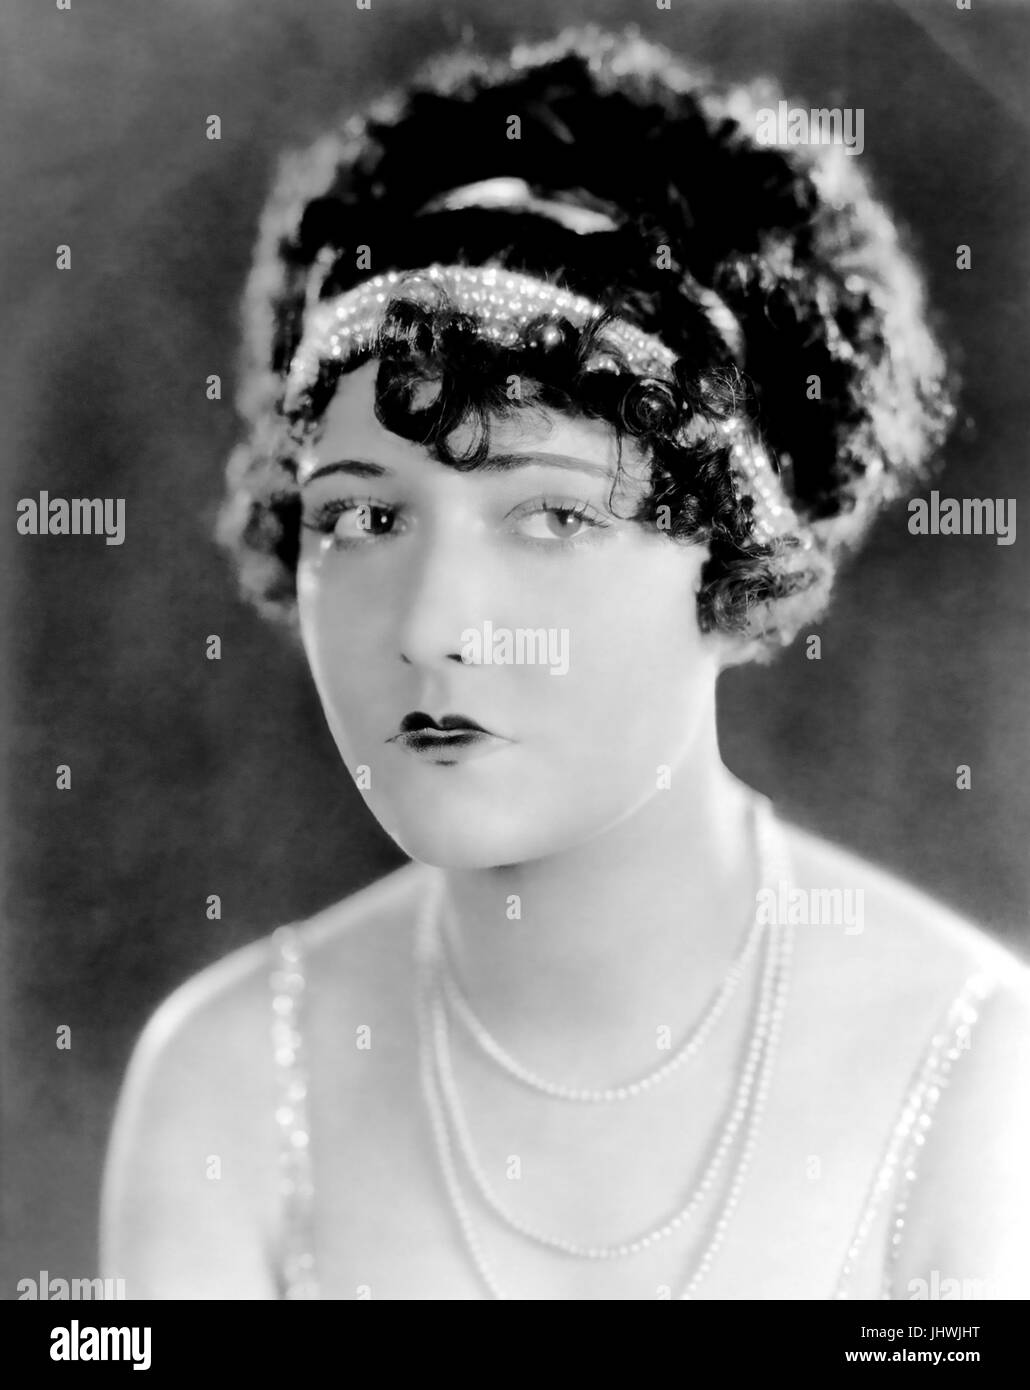 DOROTHY SEBASTIAN (1903-1957) US film and stage actress about 1928 - Stock Image